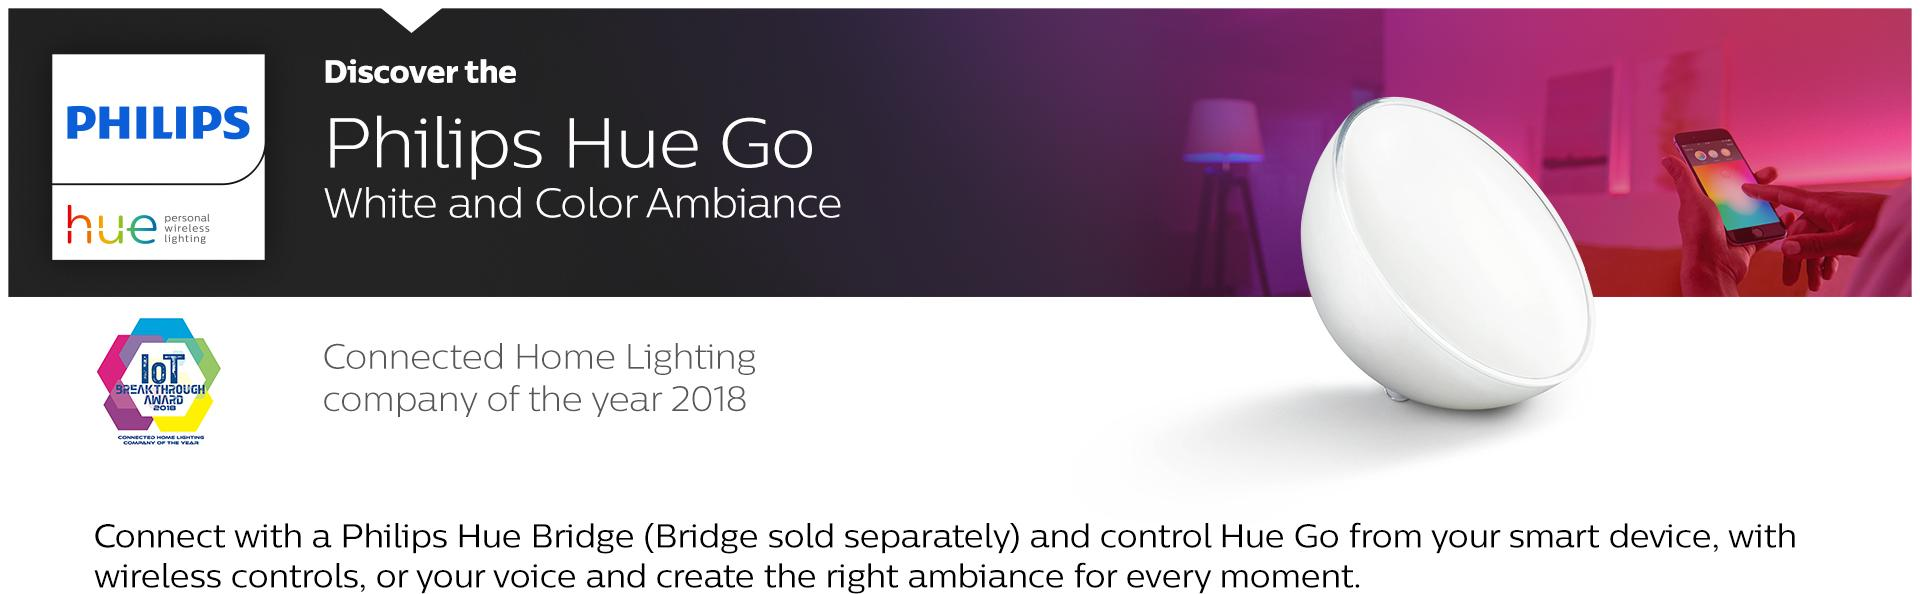 Philips Hue Go White And Color Portable Dimmable Led Smart